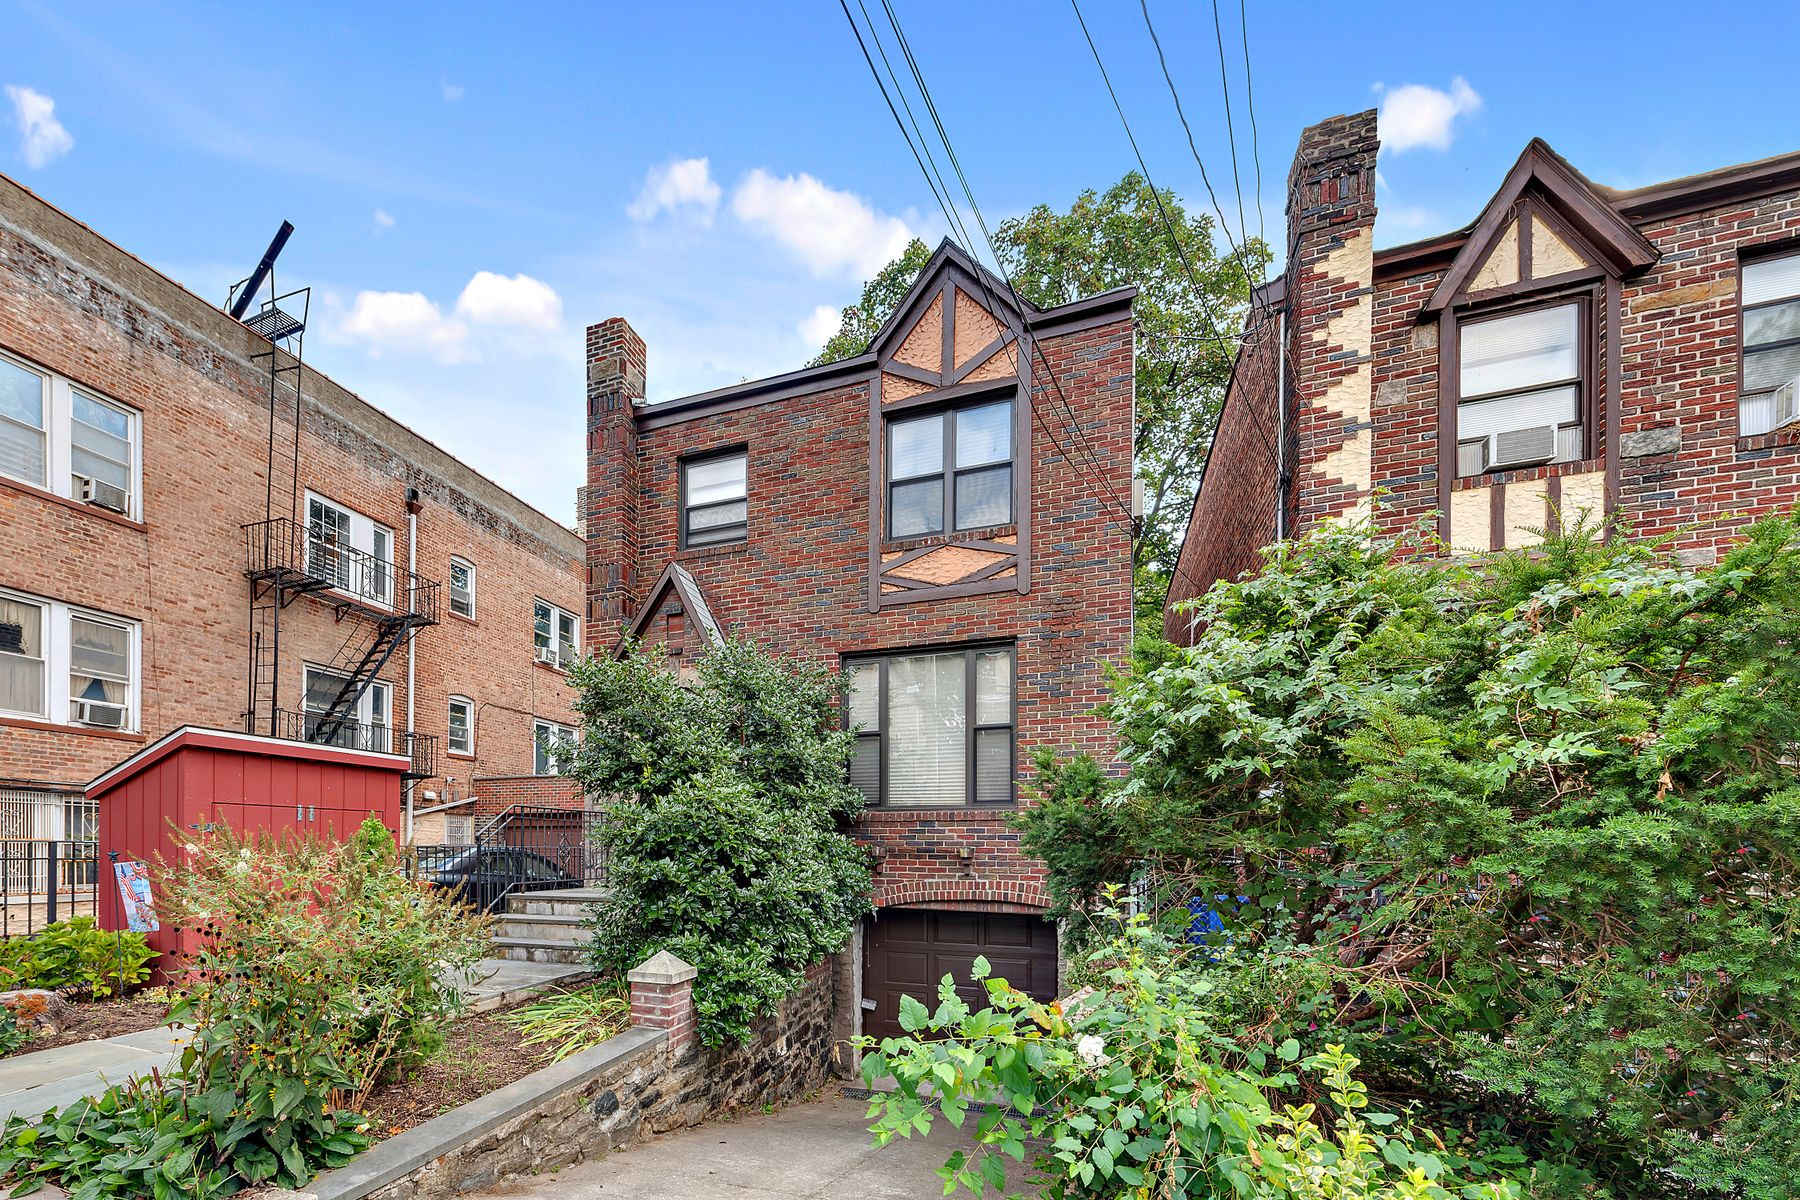 Single Family Homes for Sale at 6036 Huxley Avenue Bronx, New York 10471 United States